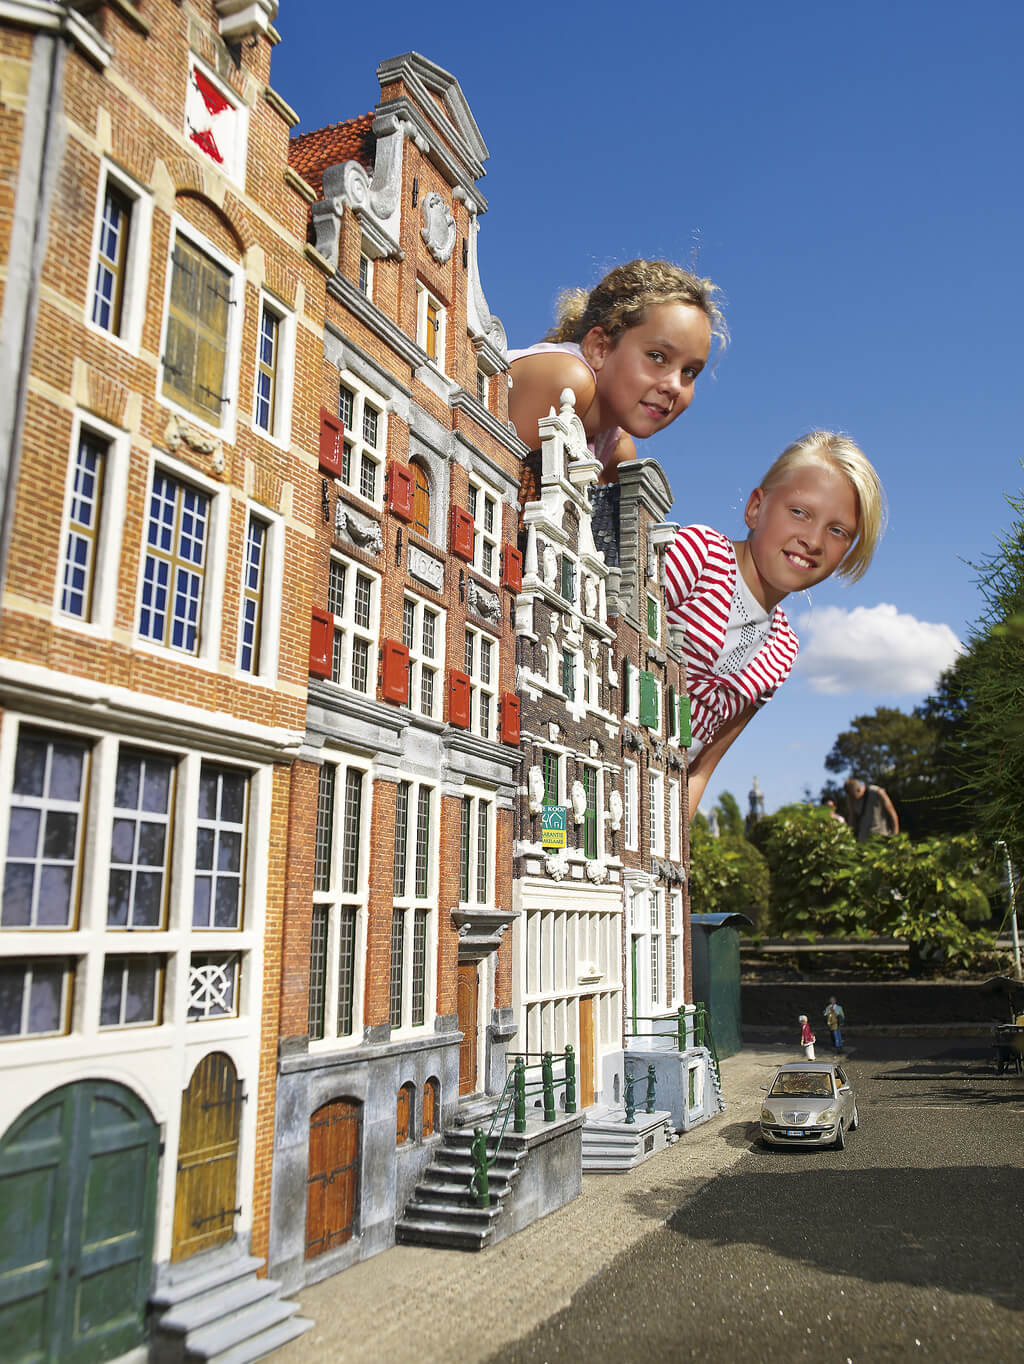 Madurodam, miniature park in The Hague. It has all the Holland Highlights concentrated in one park!